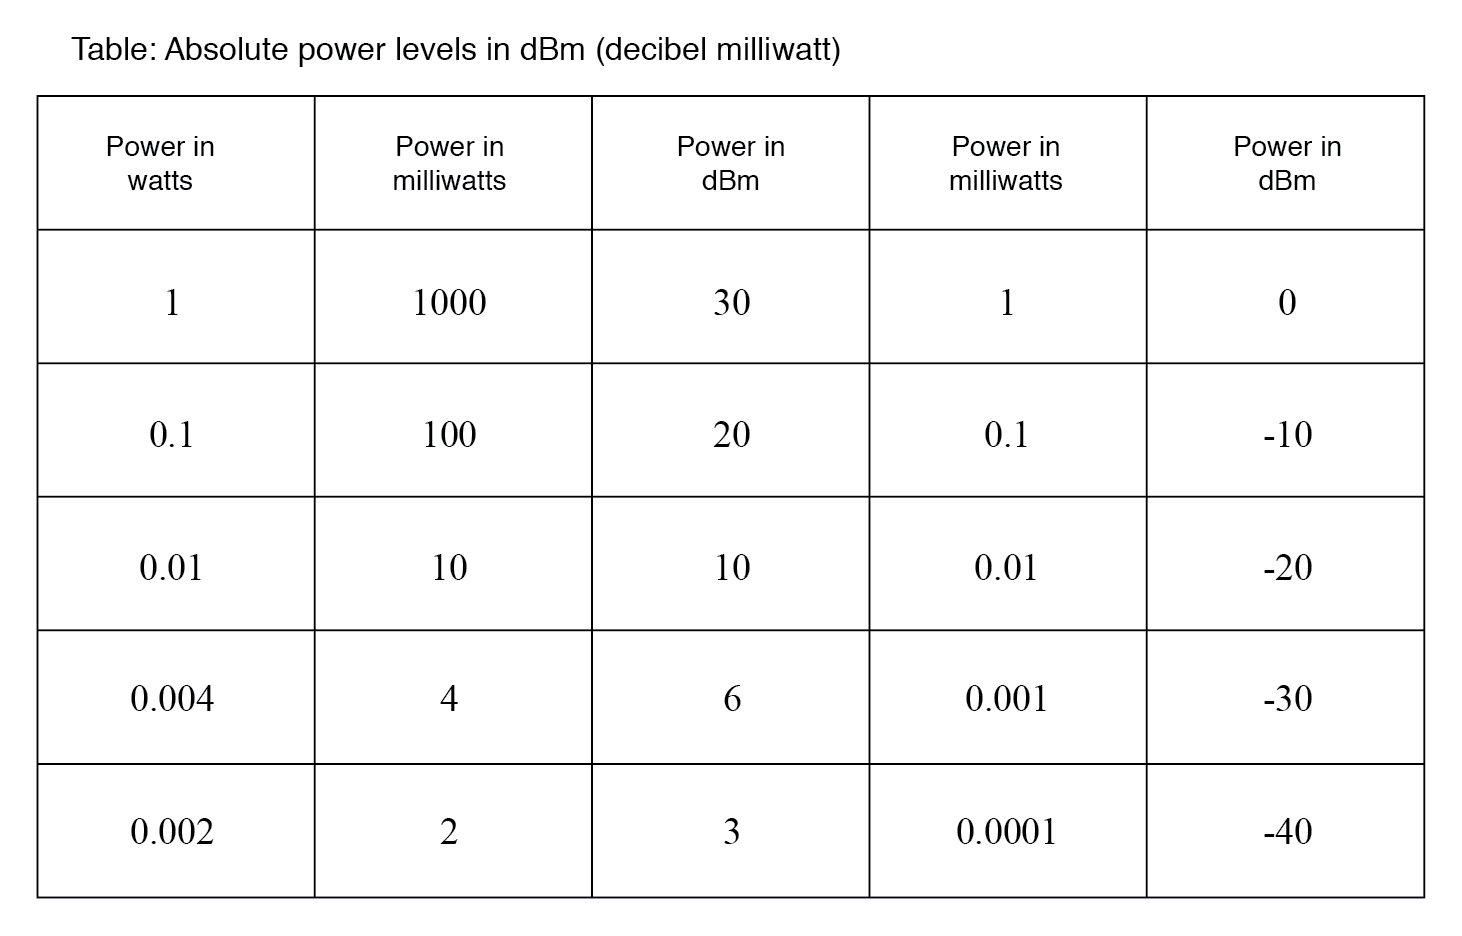 Absolute power levels in dBm (decibels referenced to 1 milliwatt).